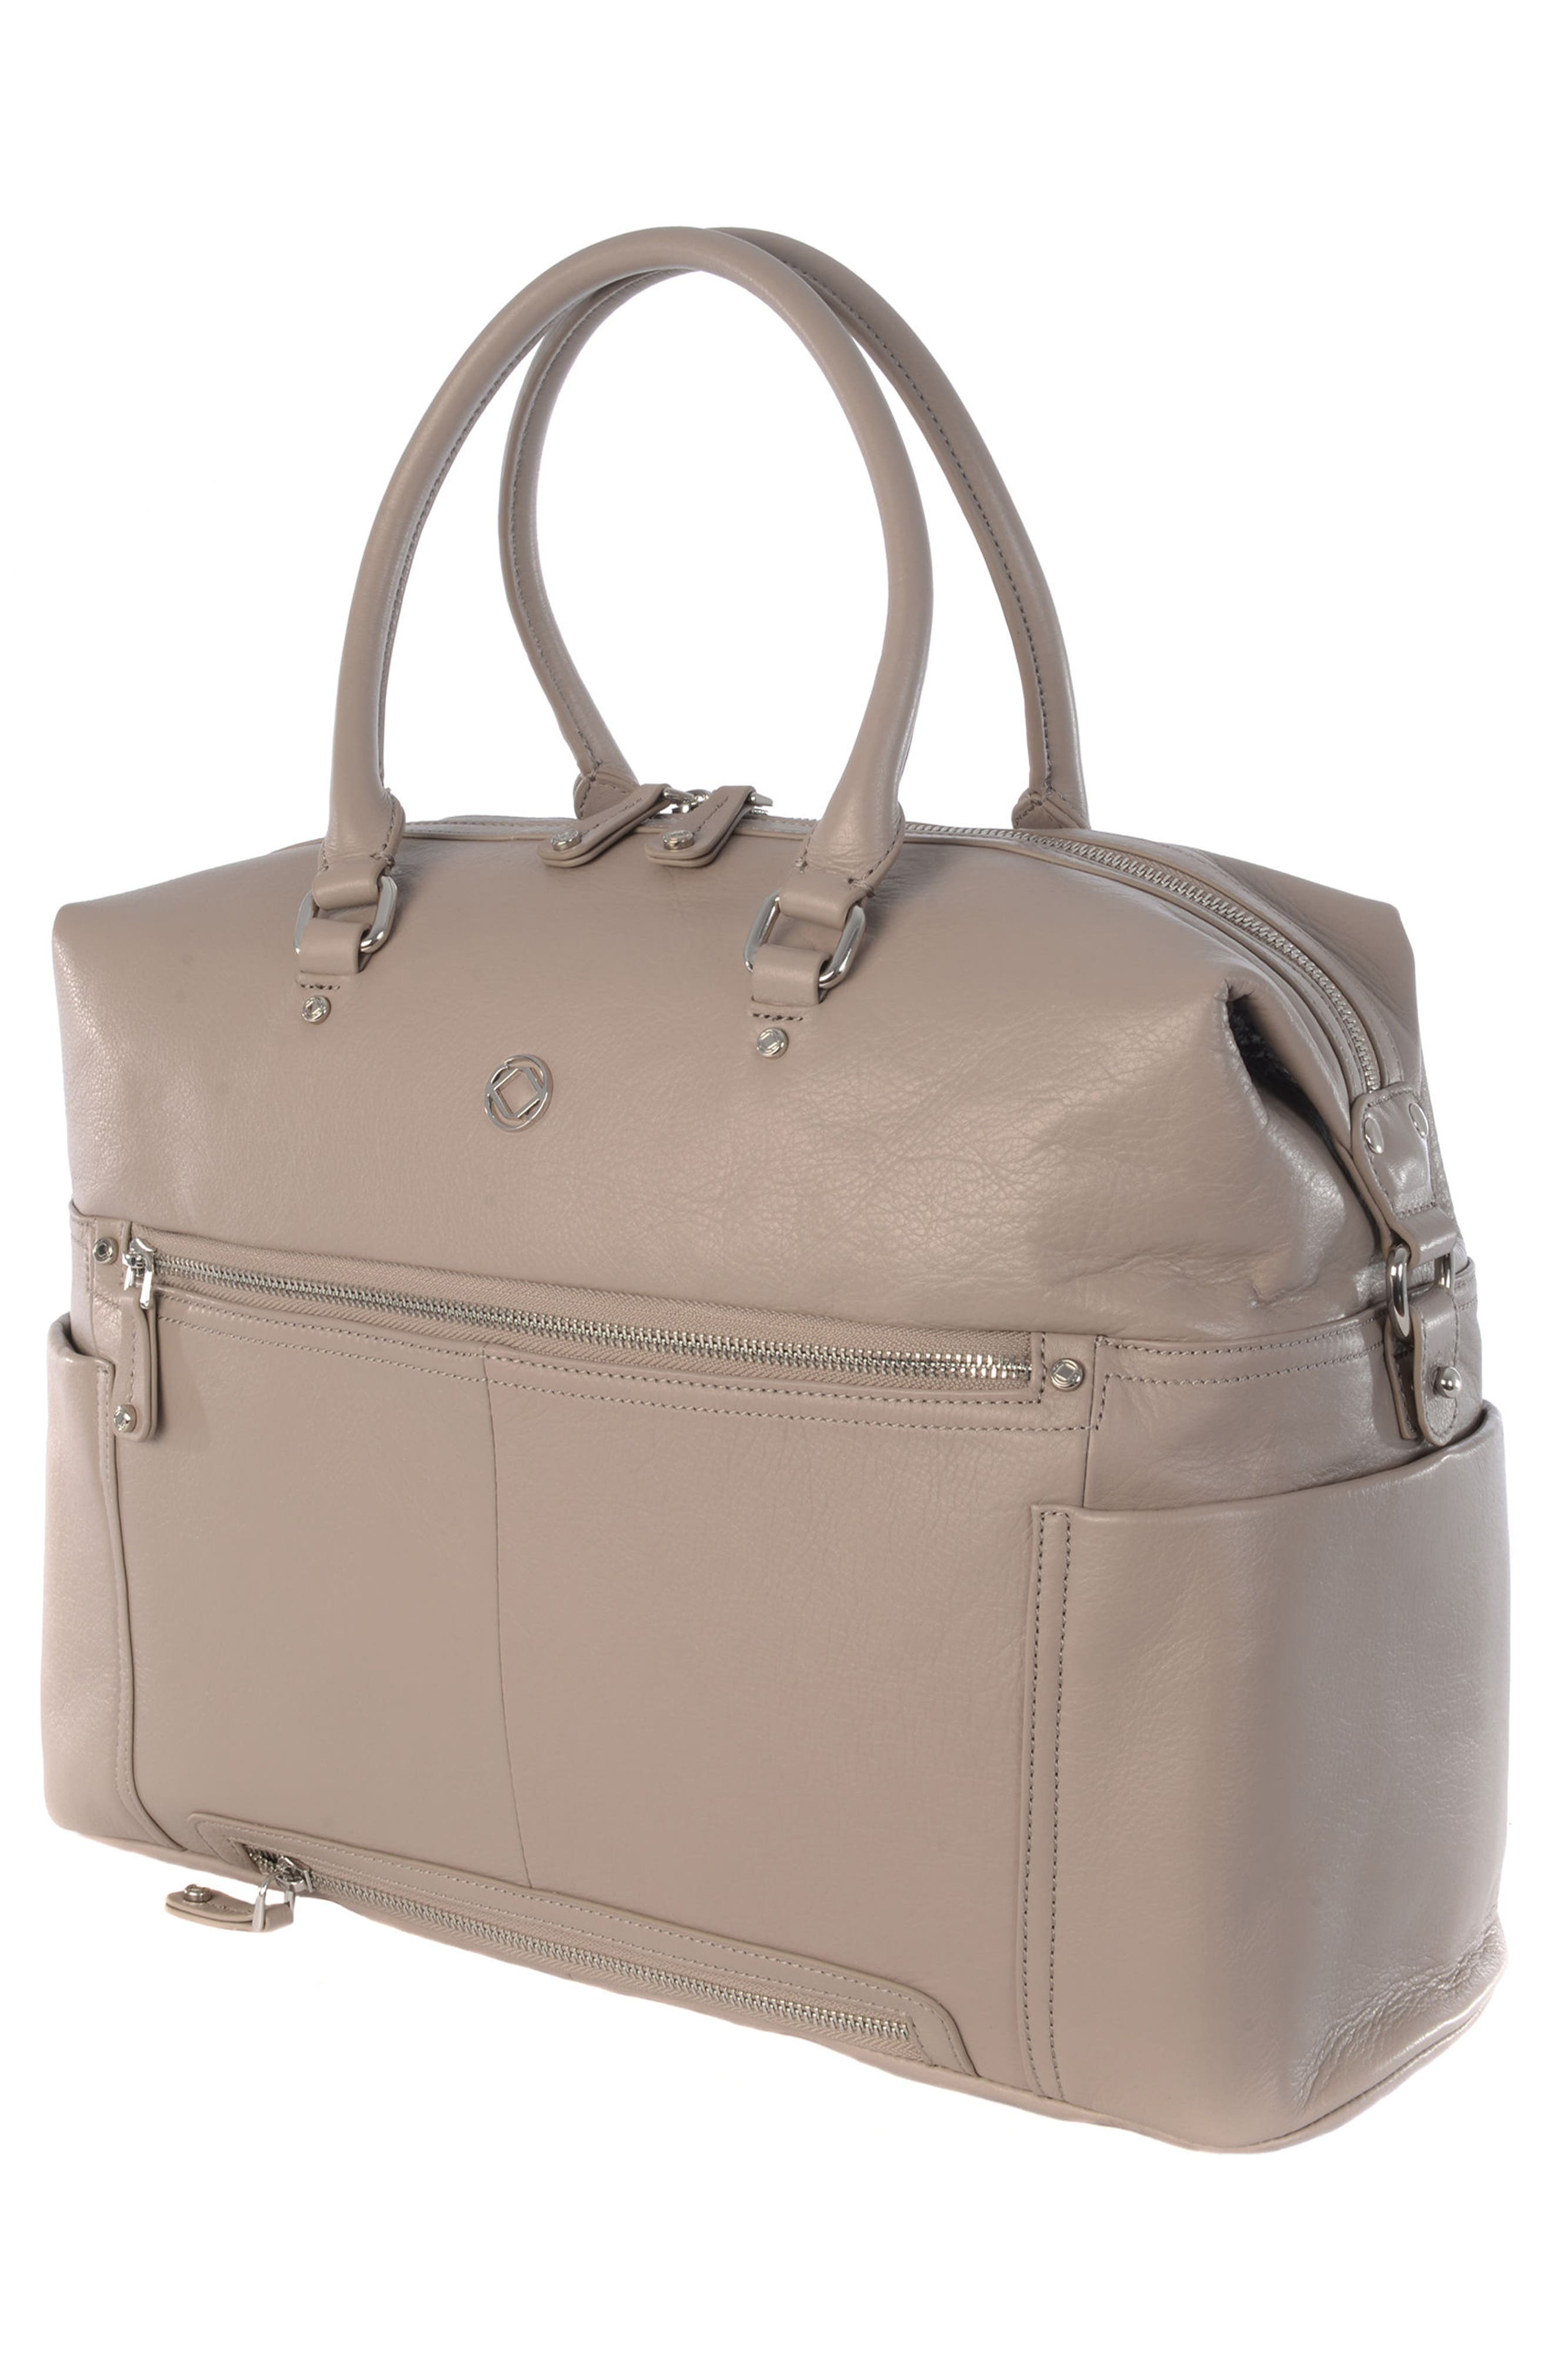 Thea Leather Satchel,                             Alternate thumbnail 2, color,                             Warm Grey/ Silver